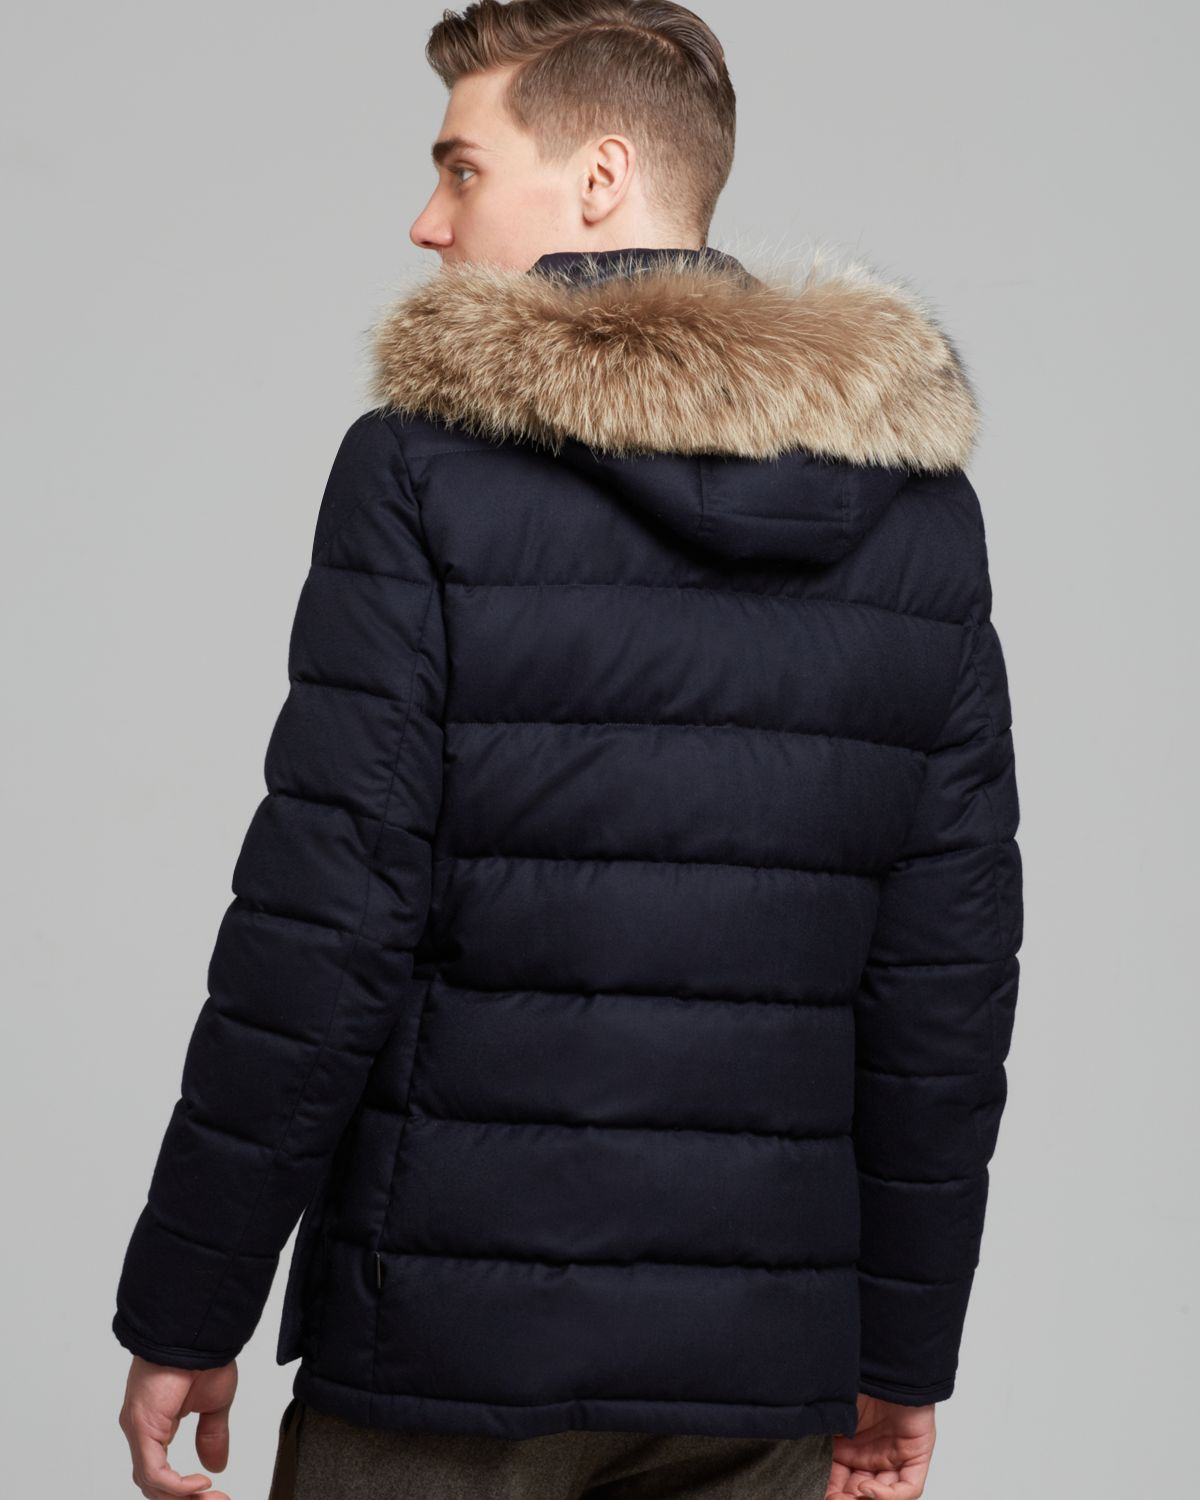 687e039ce purchase mens moncler hooded jacket 29ee1 bd83a